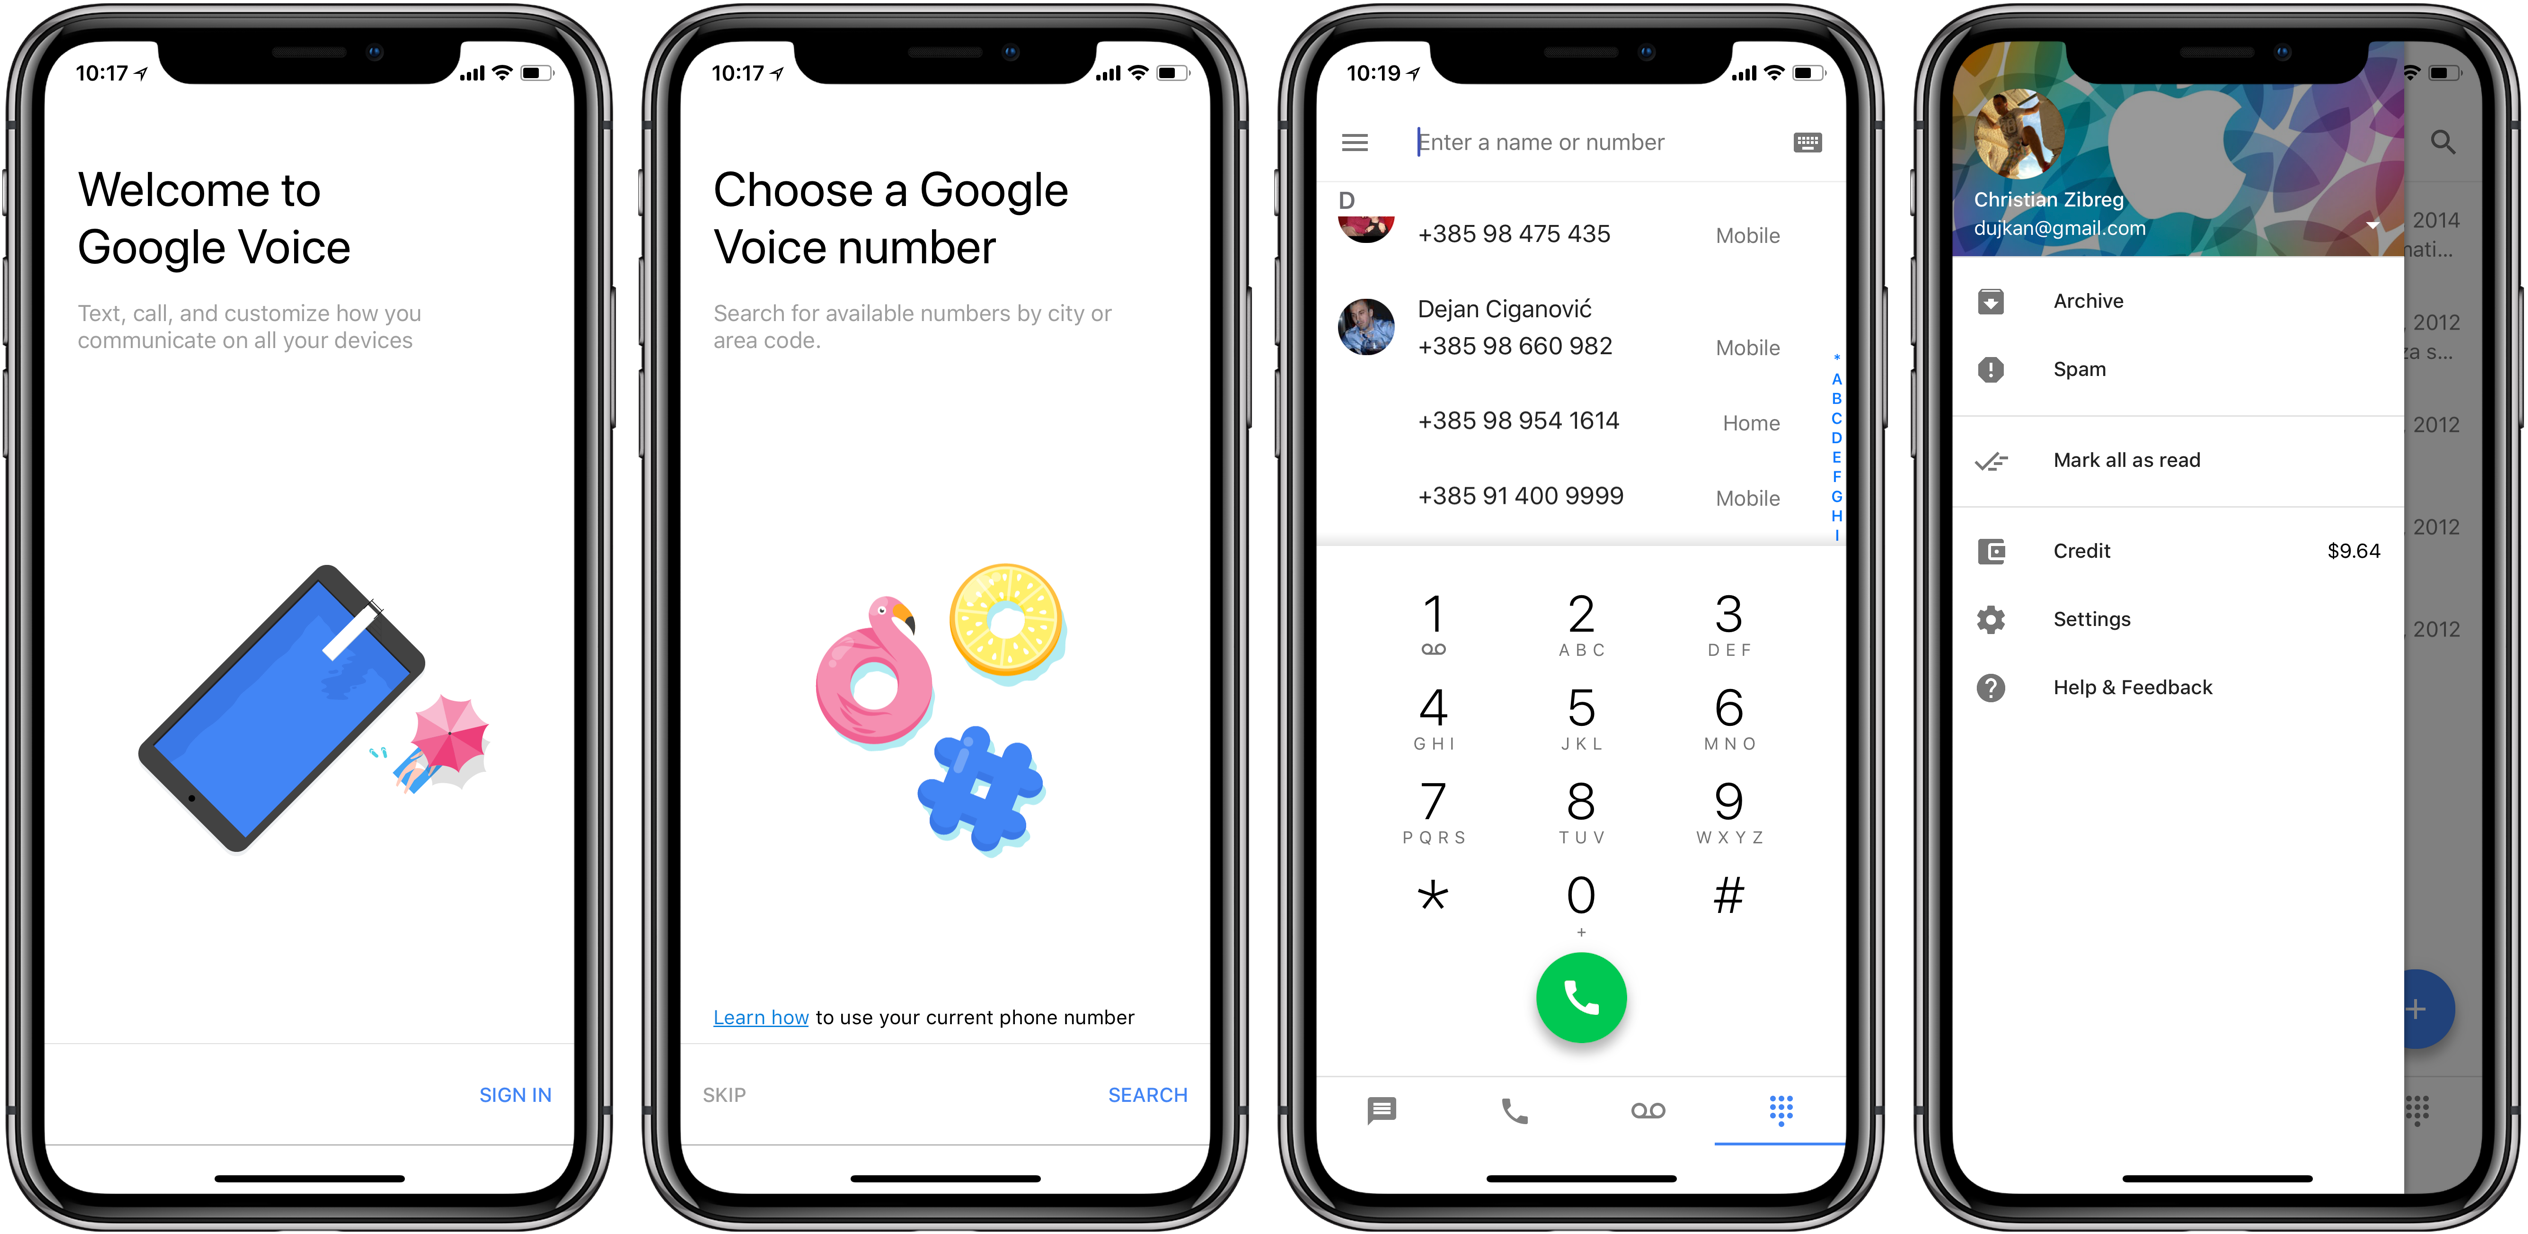 Google Voice has been optimized for iPhone X